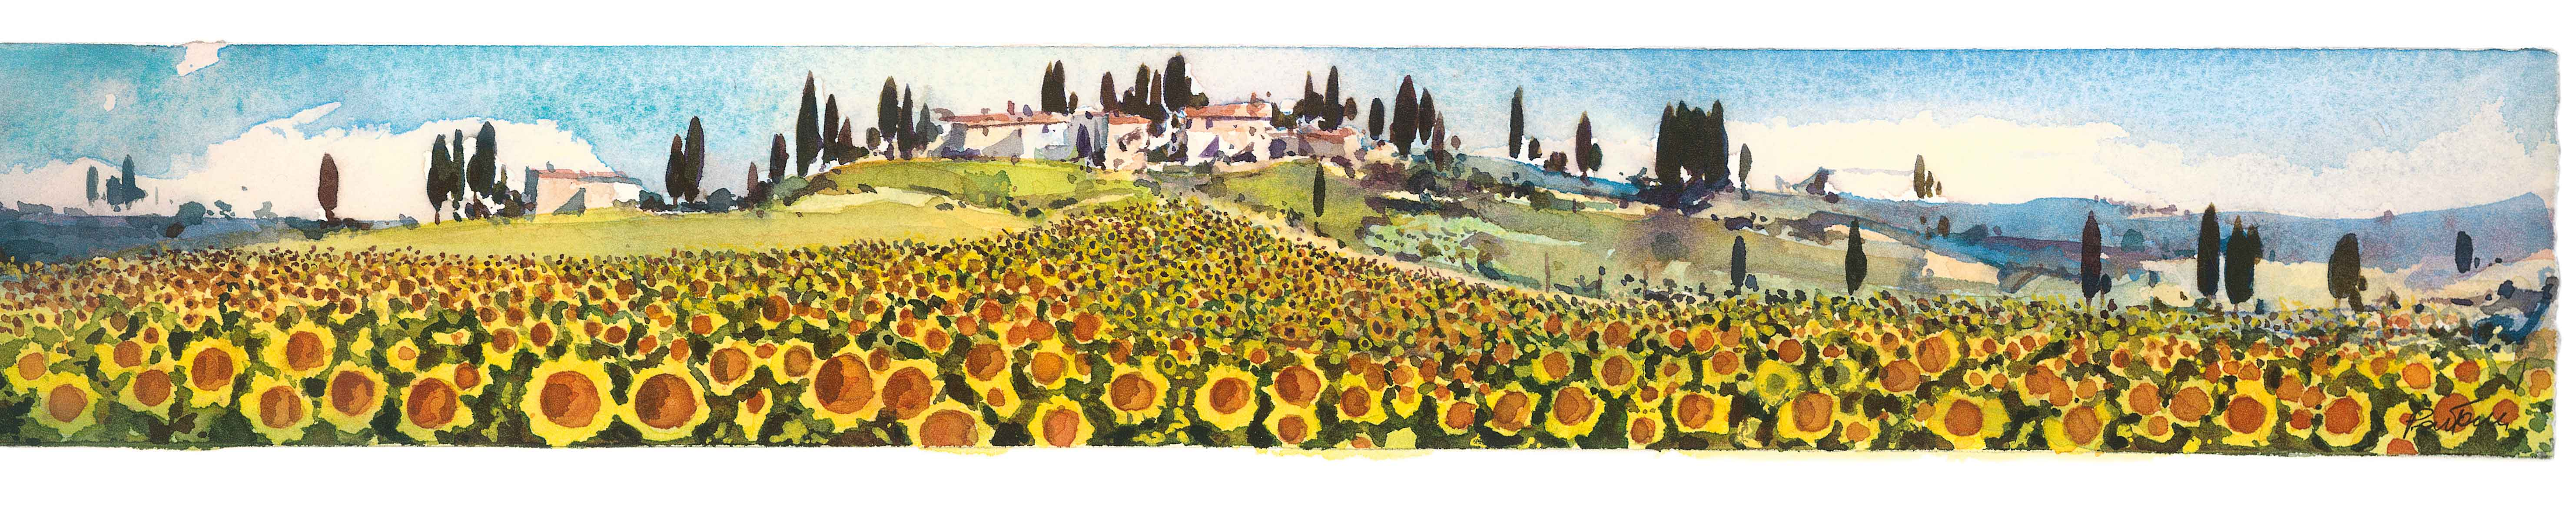 Girasoli in toscana, toscana sunflowers